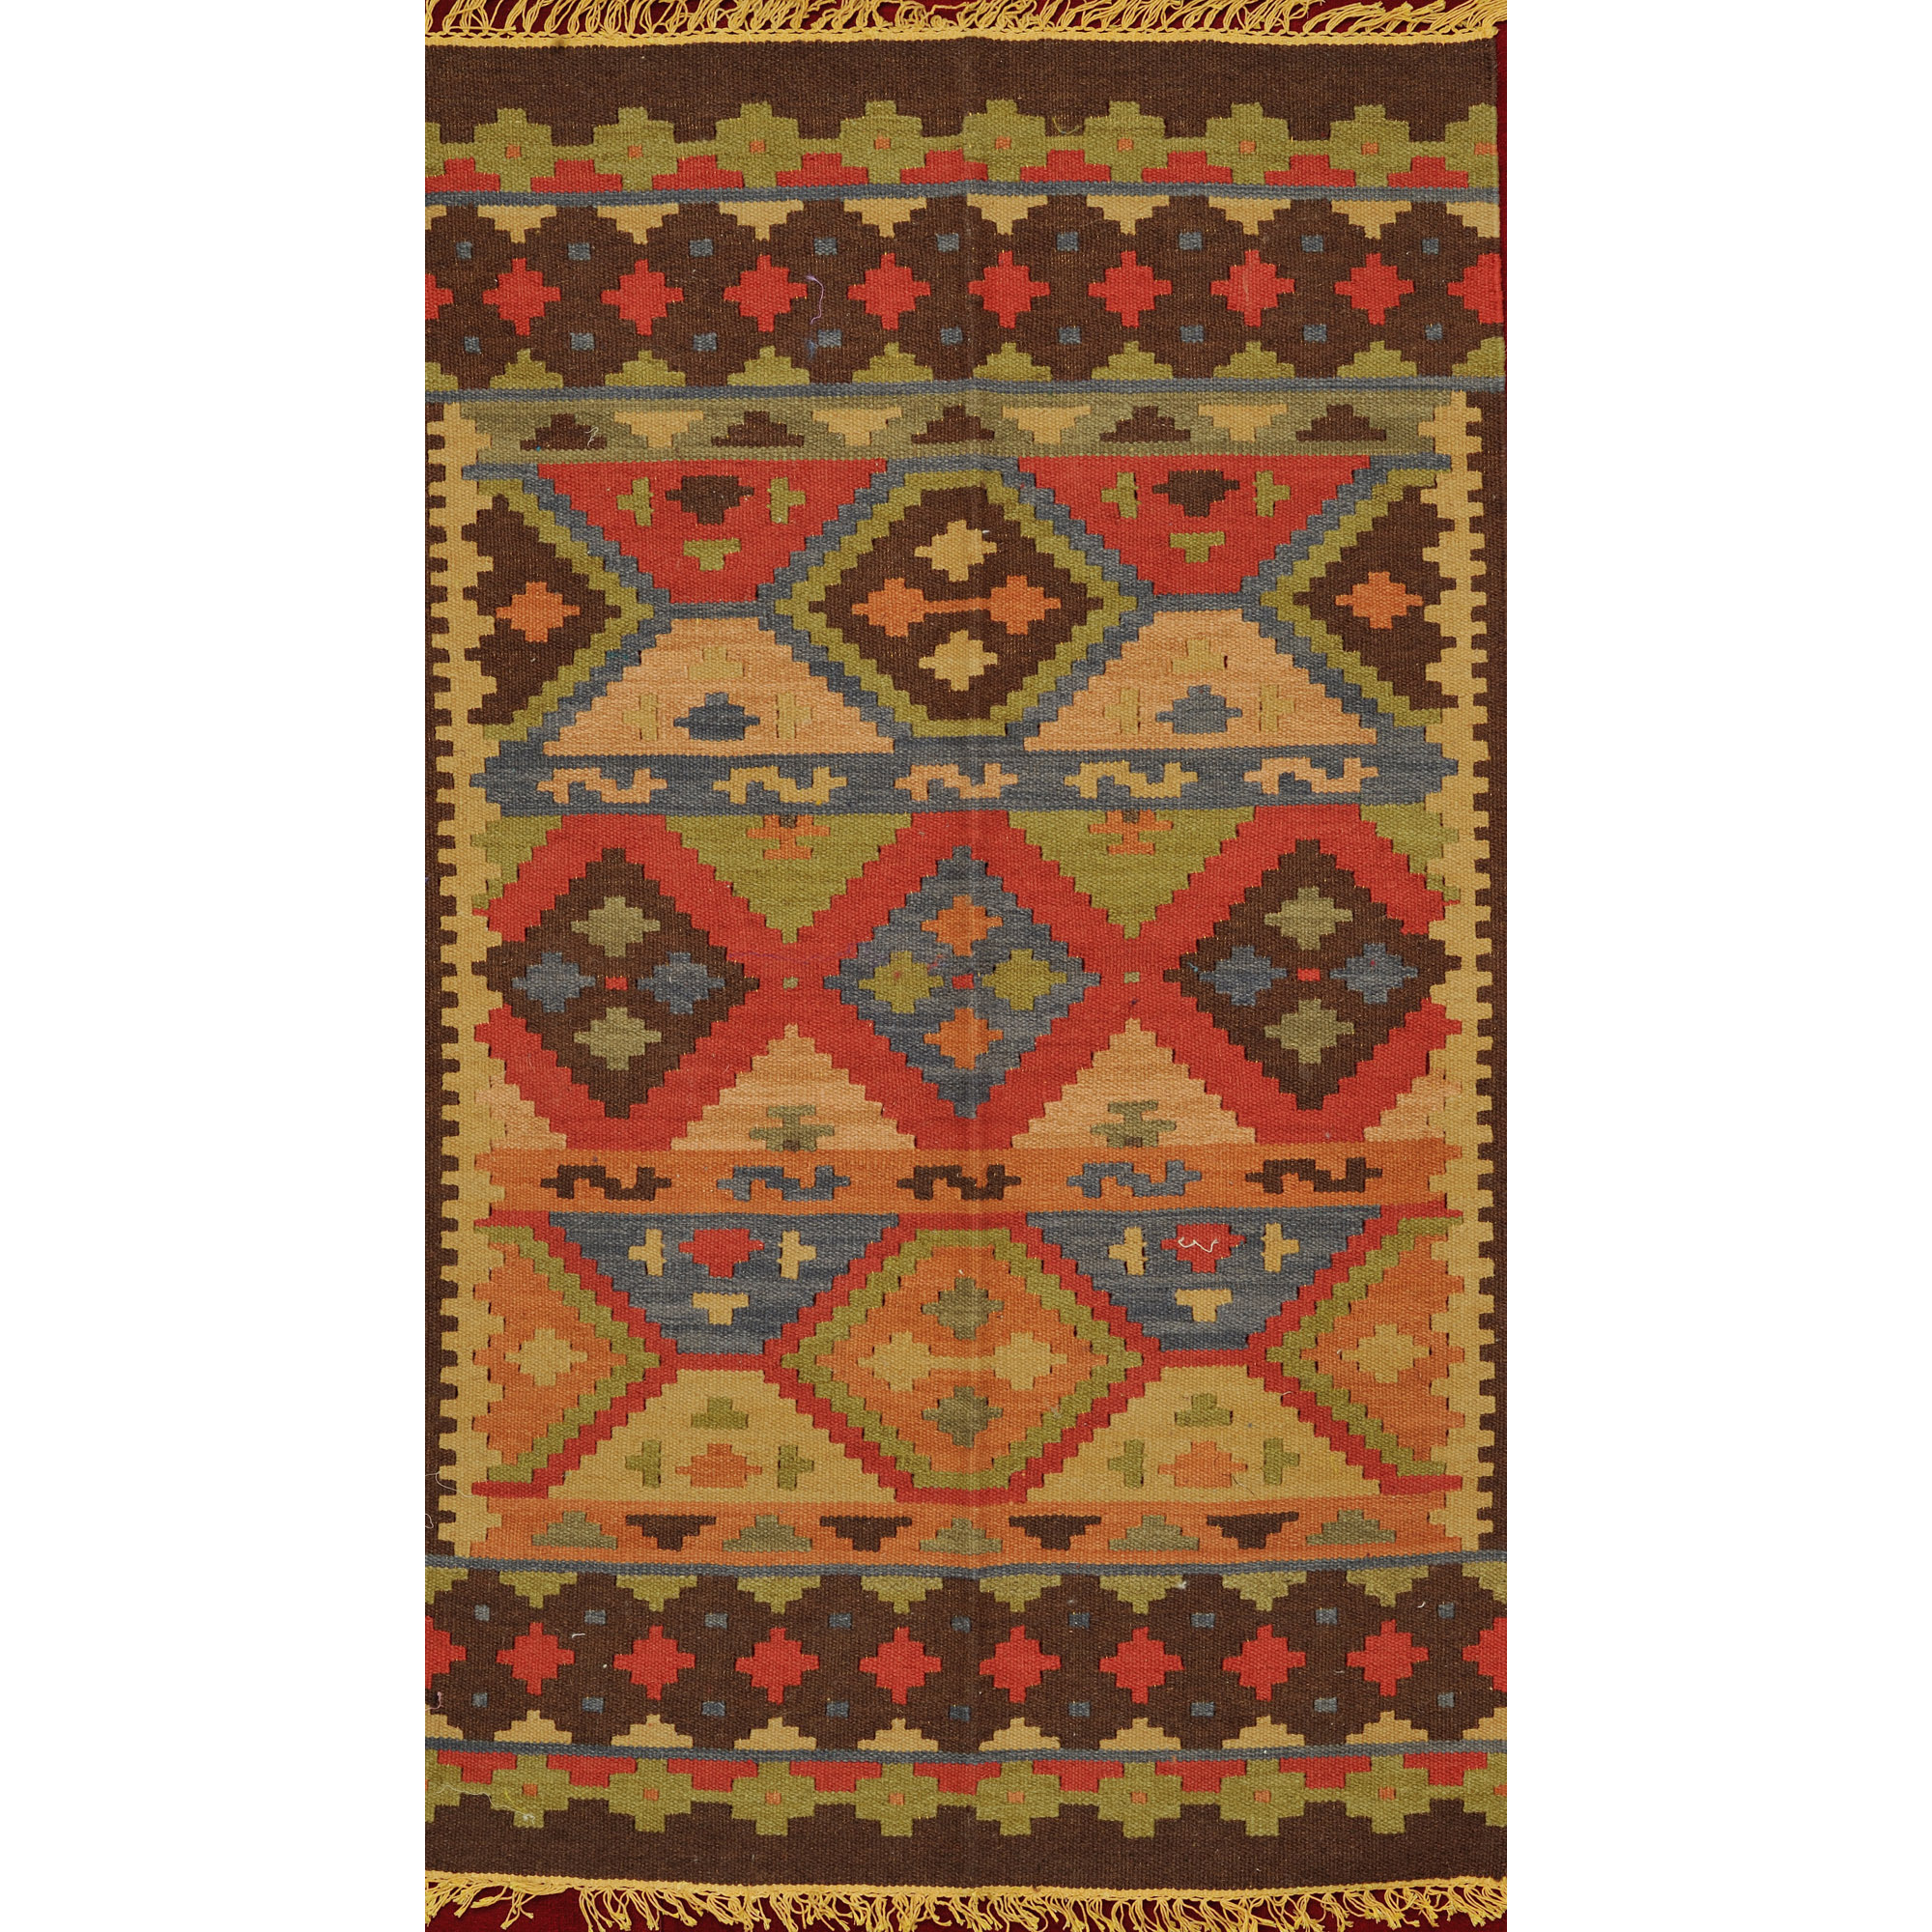 Multicolor Handloom Dhurrie from Sitapur with Kilim Weave All-Over